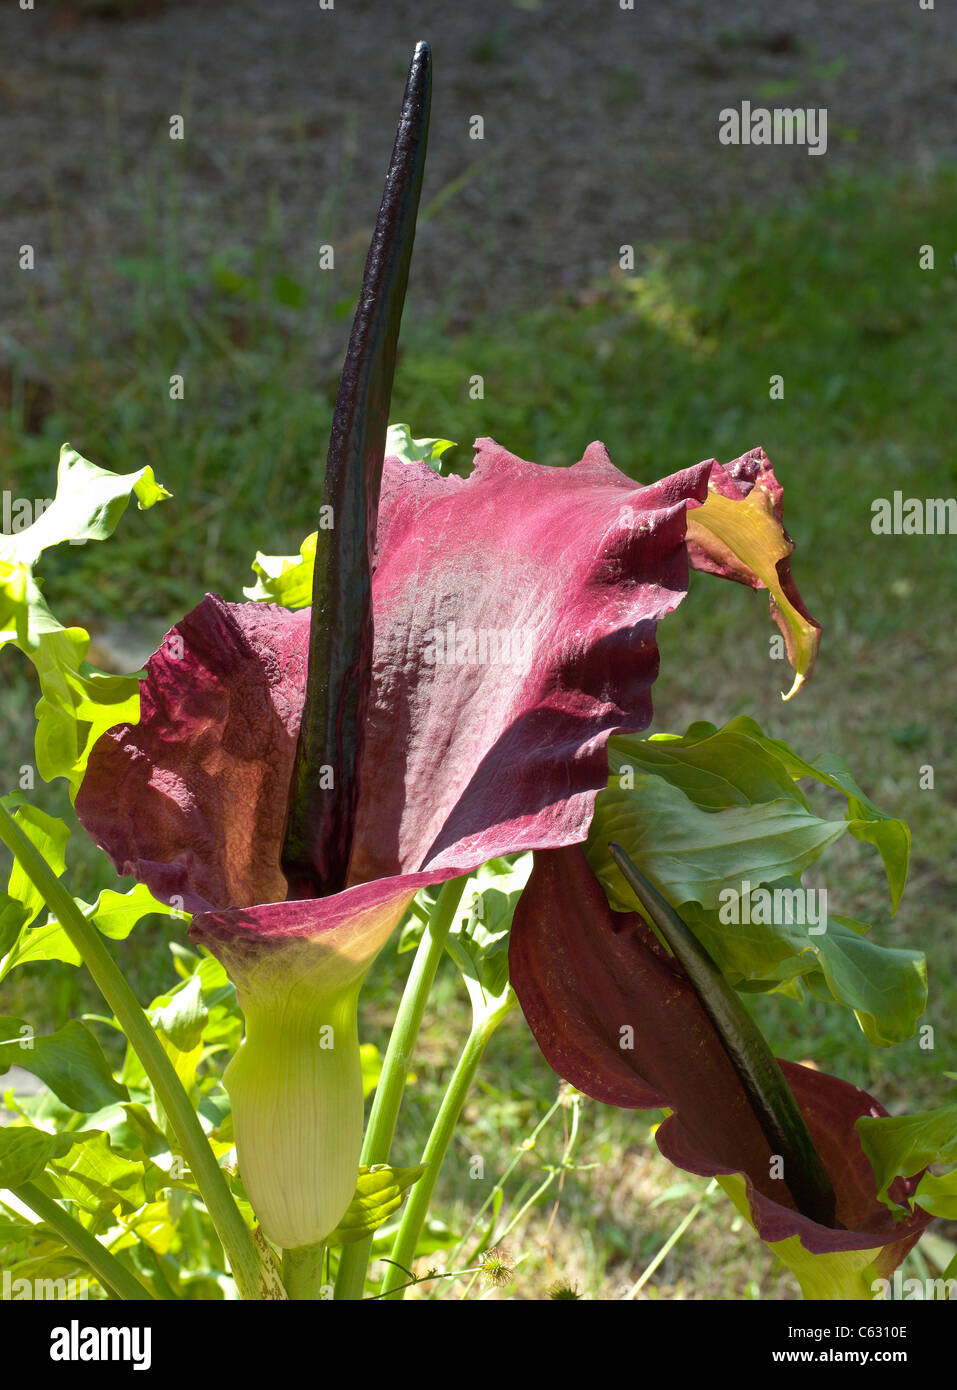 DRAGON ARUM PLANT IN FLOWER - Stock Image